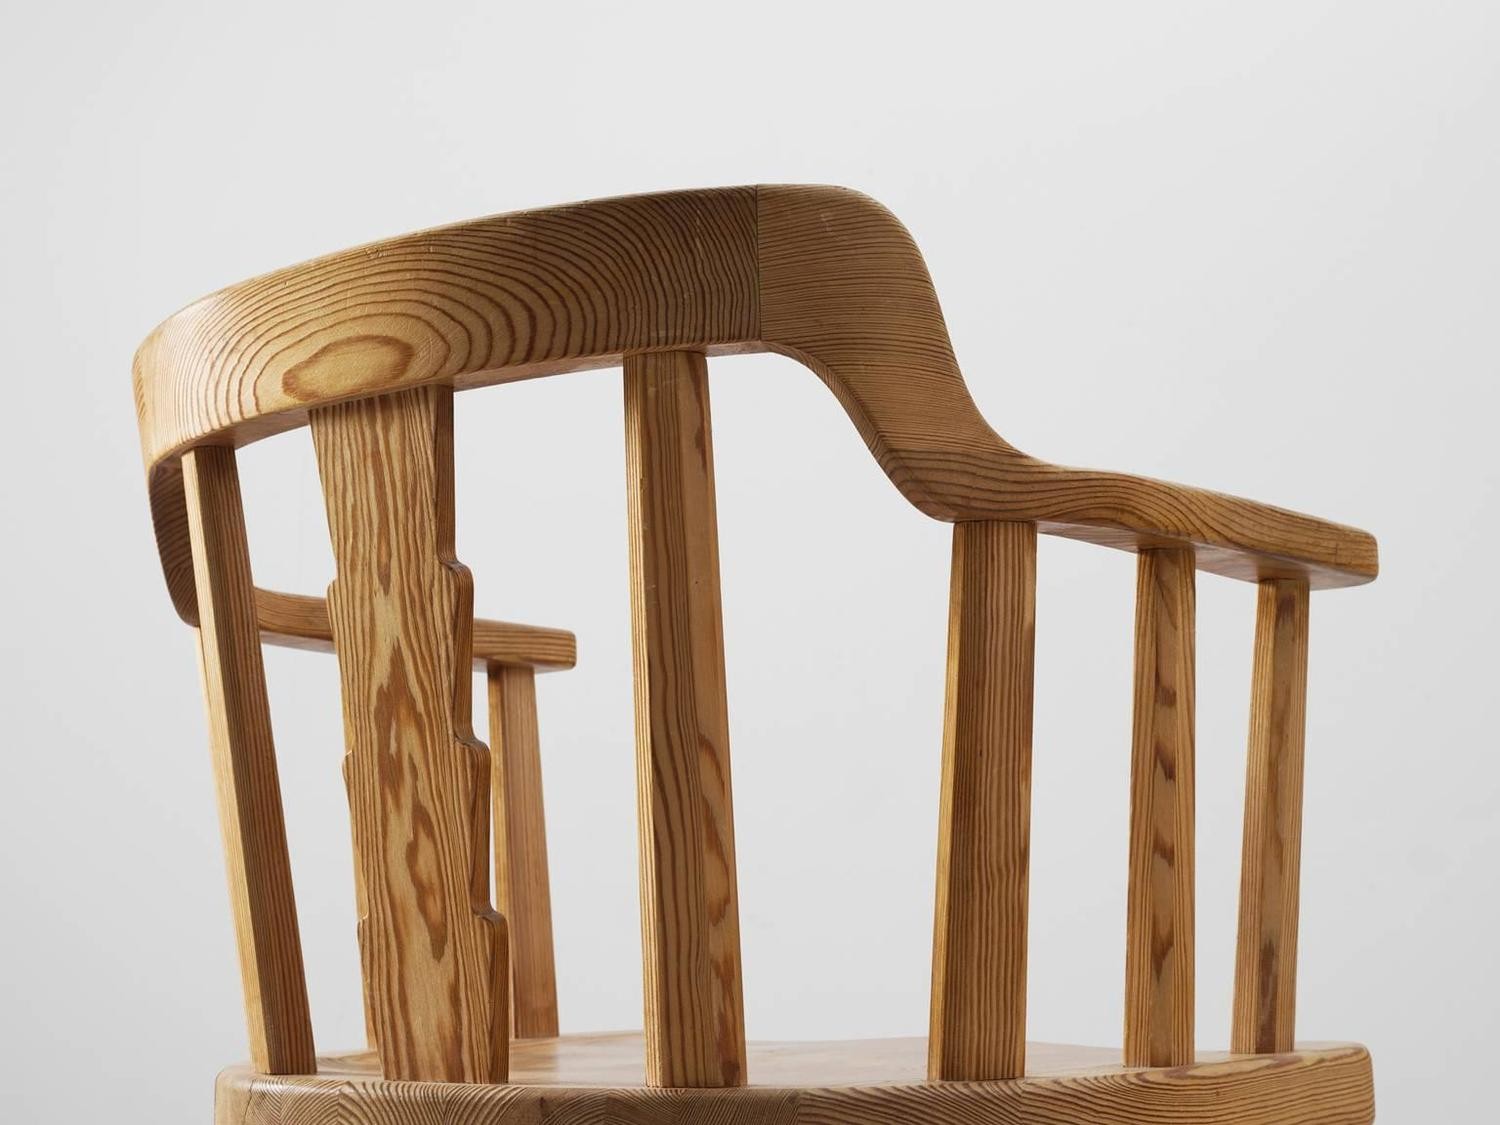 dining chairs in pine for nordiska kompaniet sweden for sale at